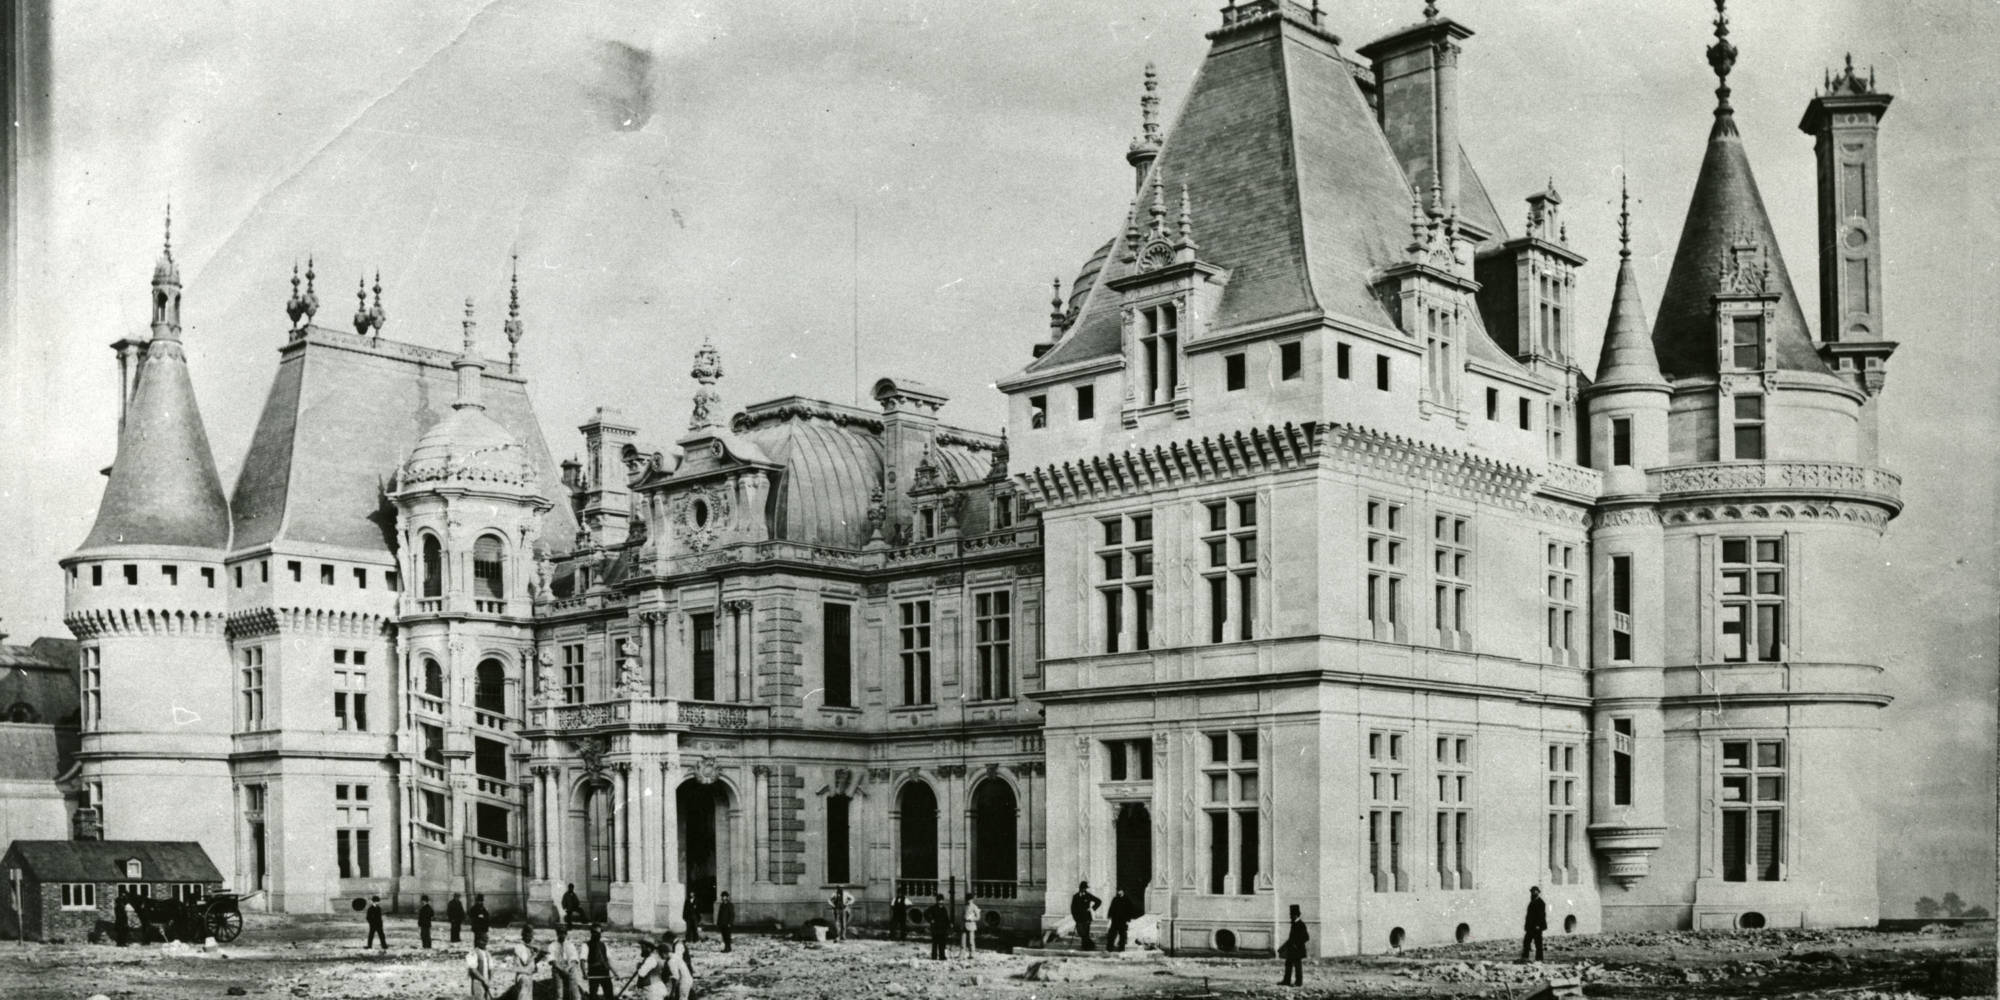 Waddesdon nearing completion in 1883, before the addition of the Morning Room wing